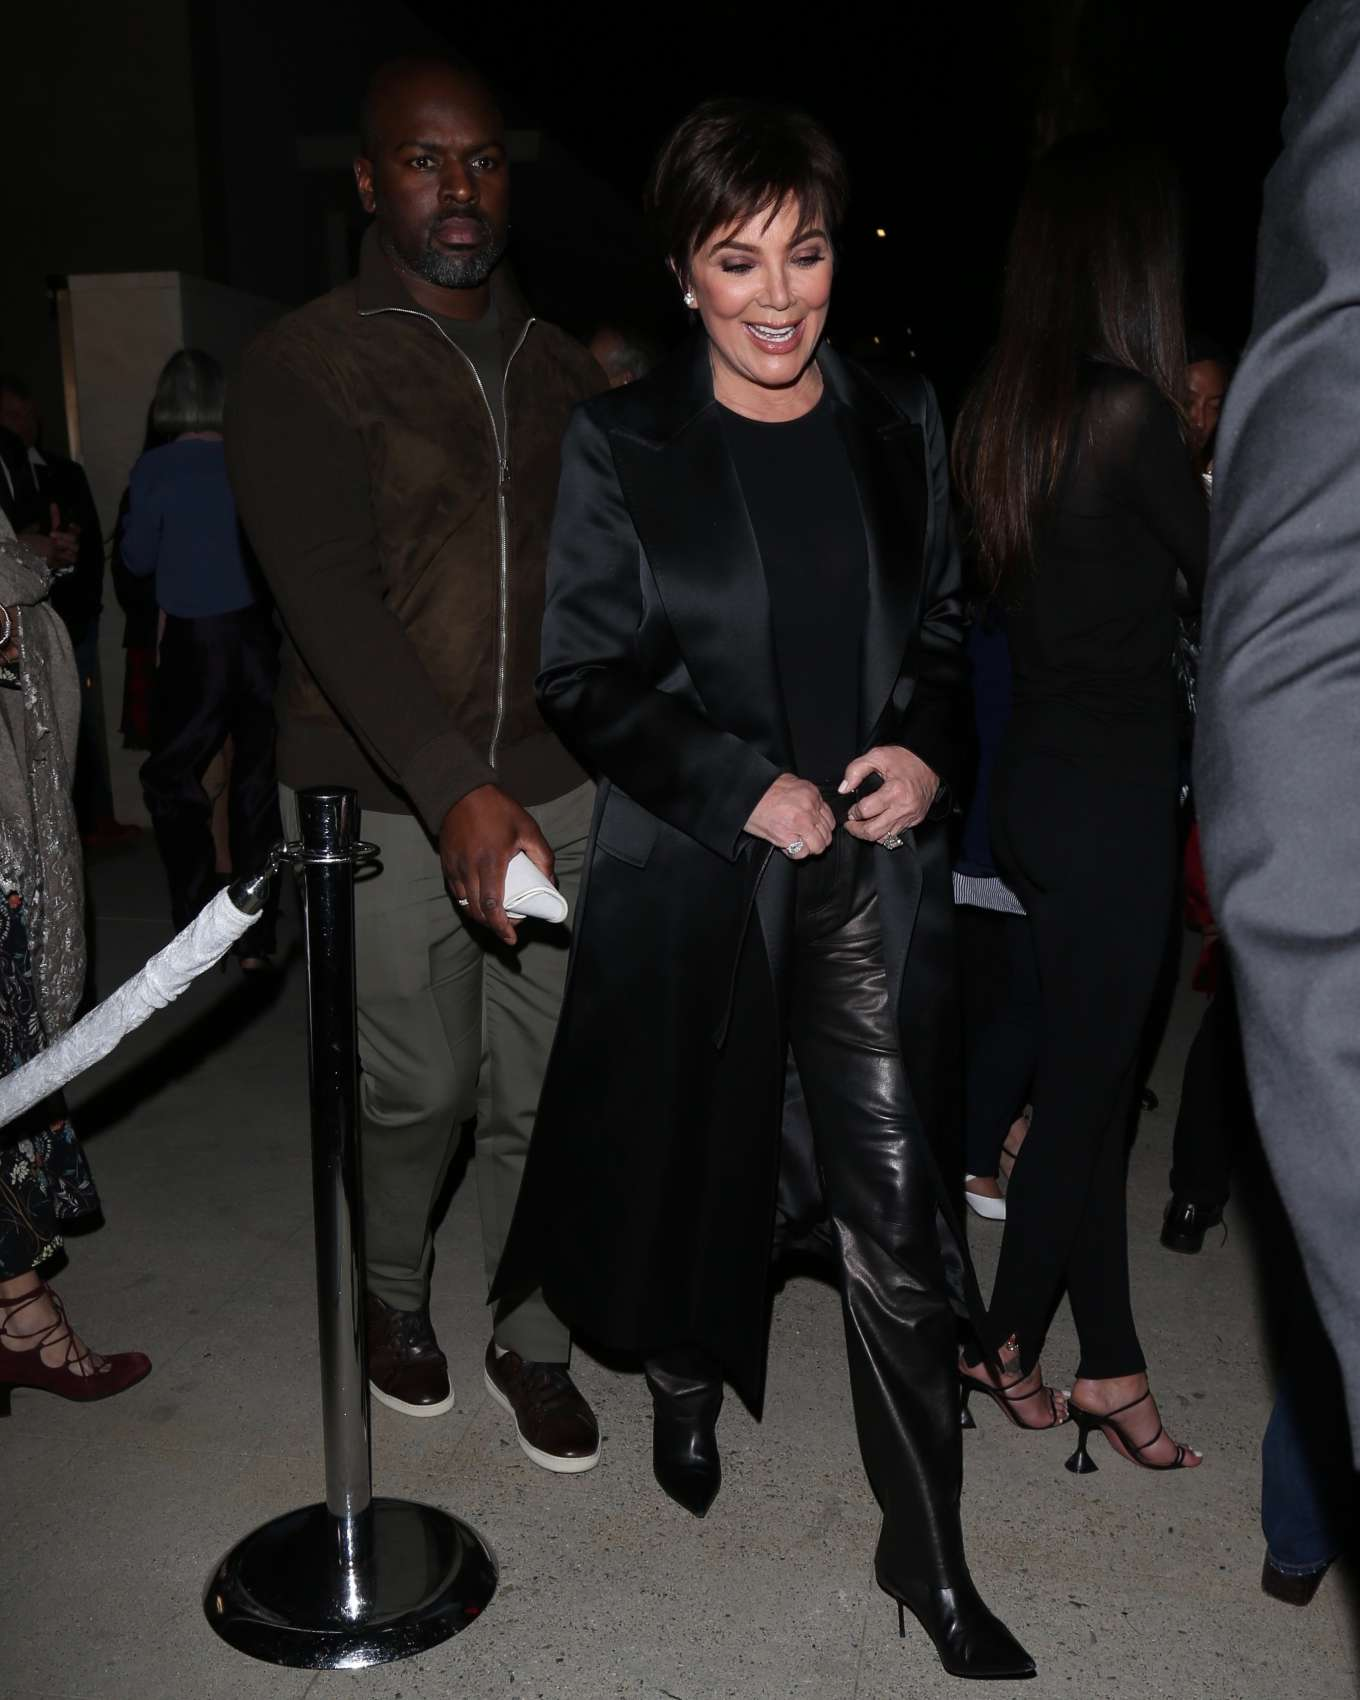 Kris Jenner 2020 : Kris Jenner arrives to Tom Ford Fashion show in Los Angeles-04